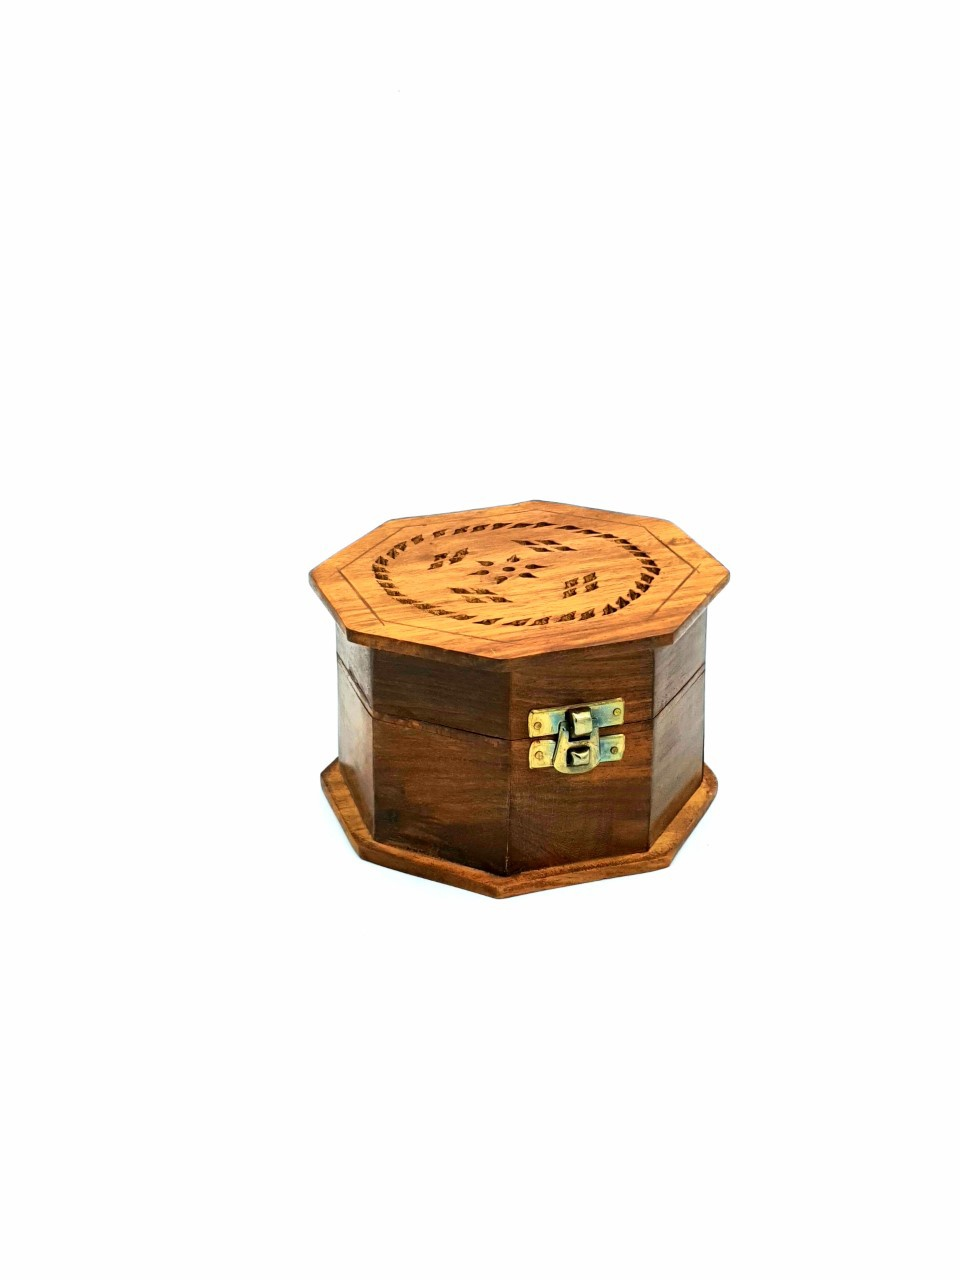 Buy Wooden Octagon Incense Burner